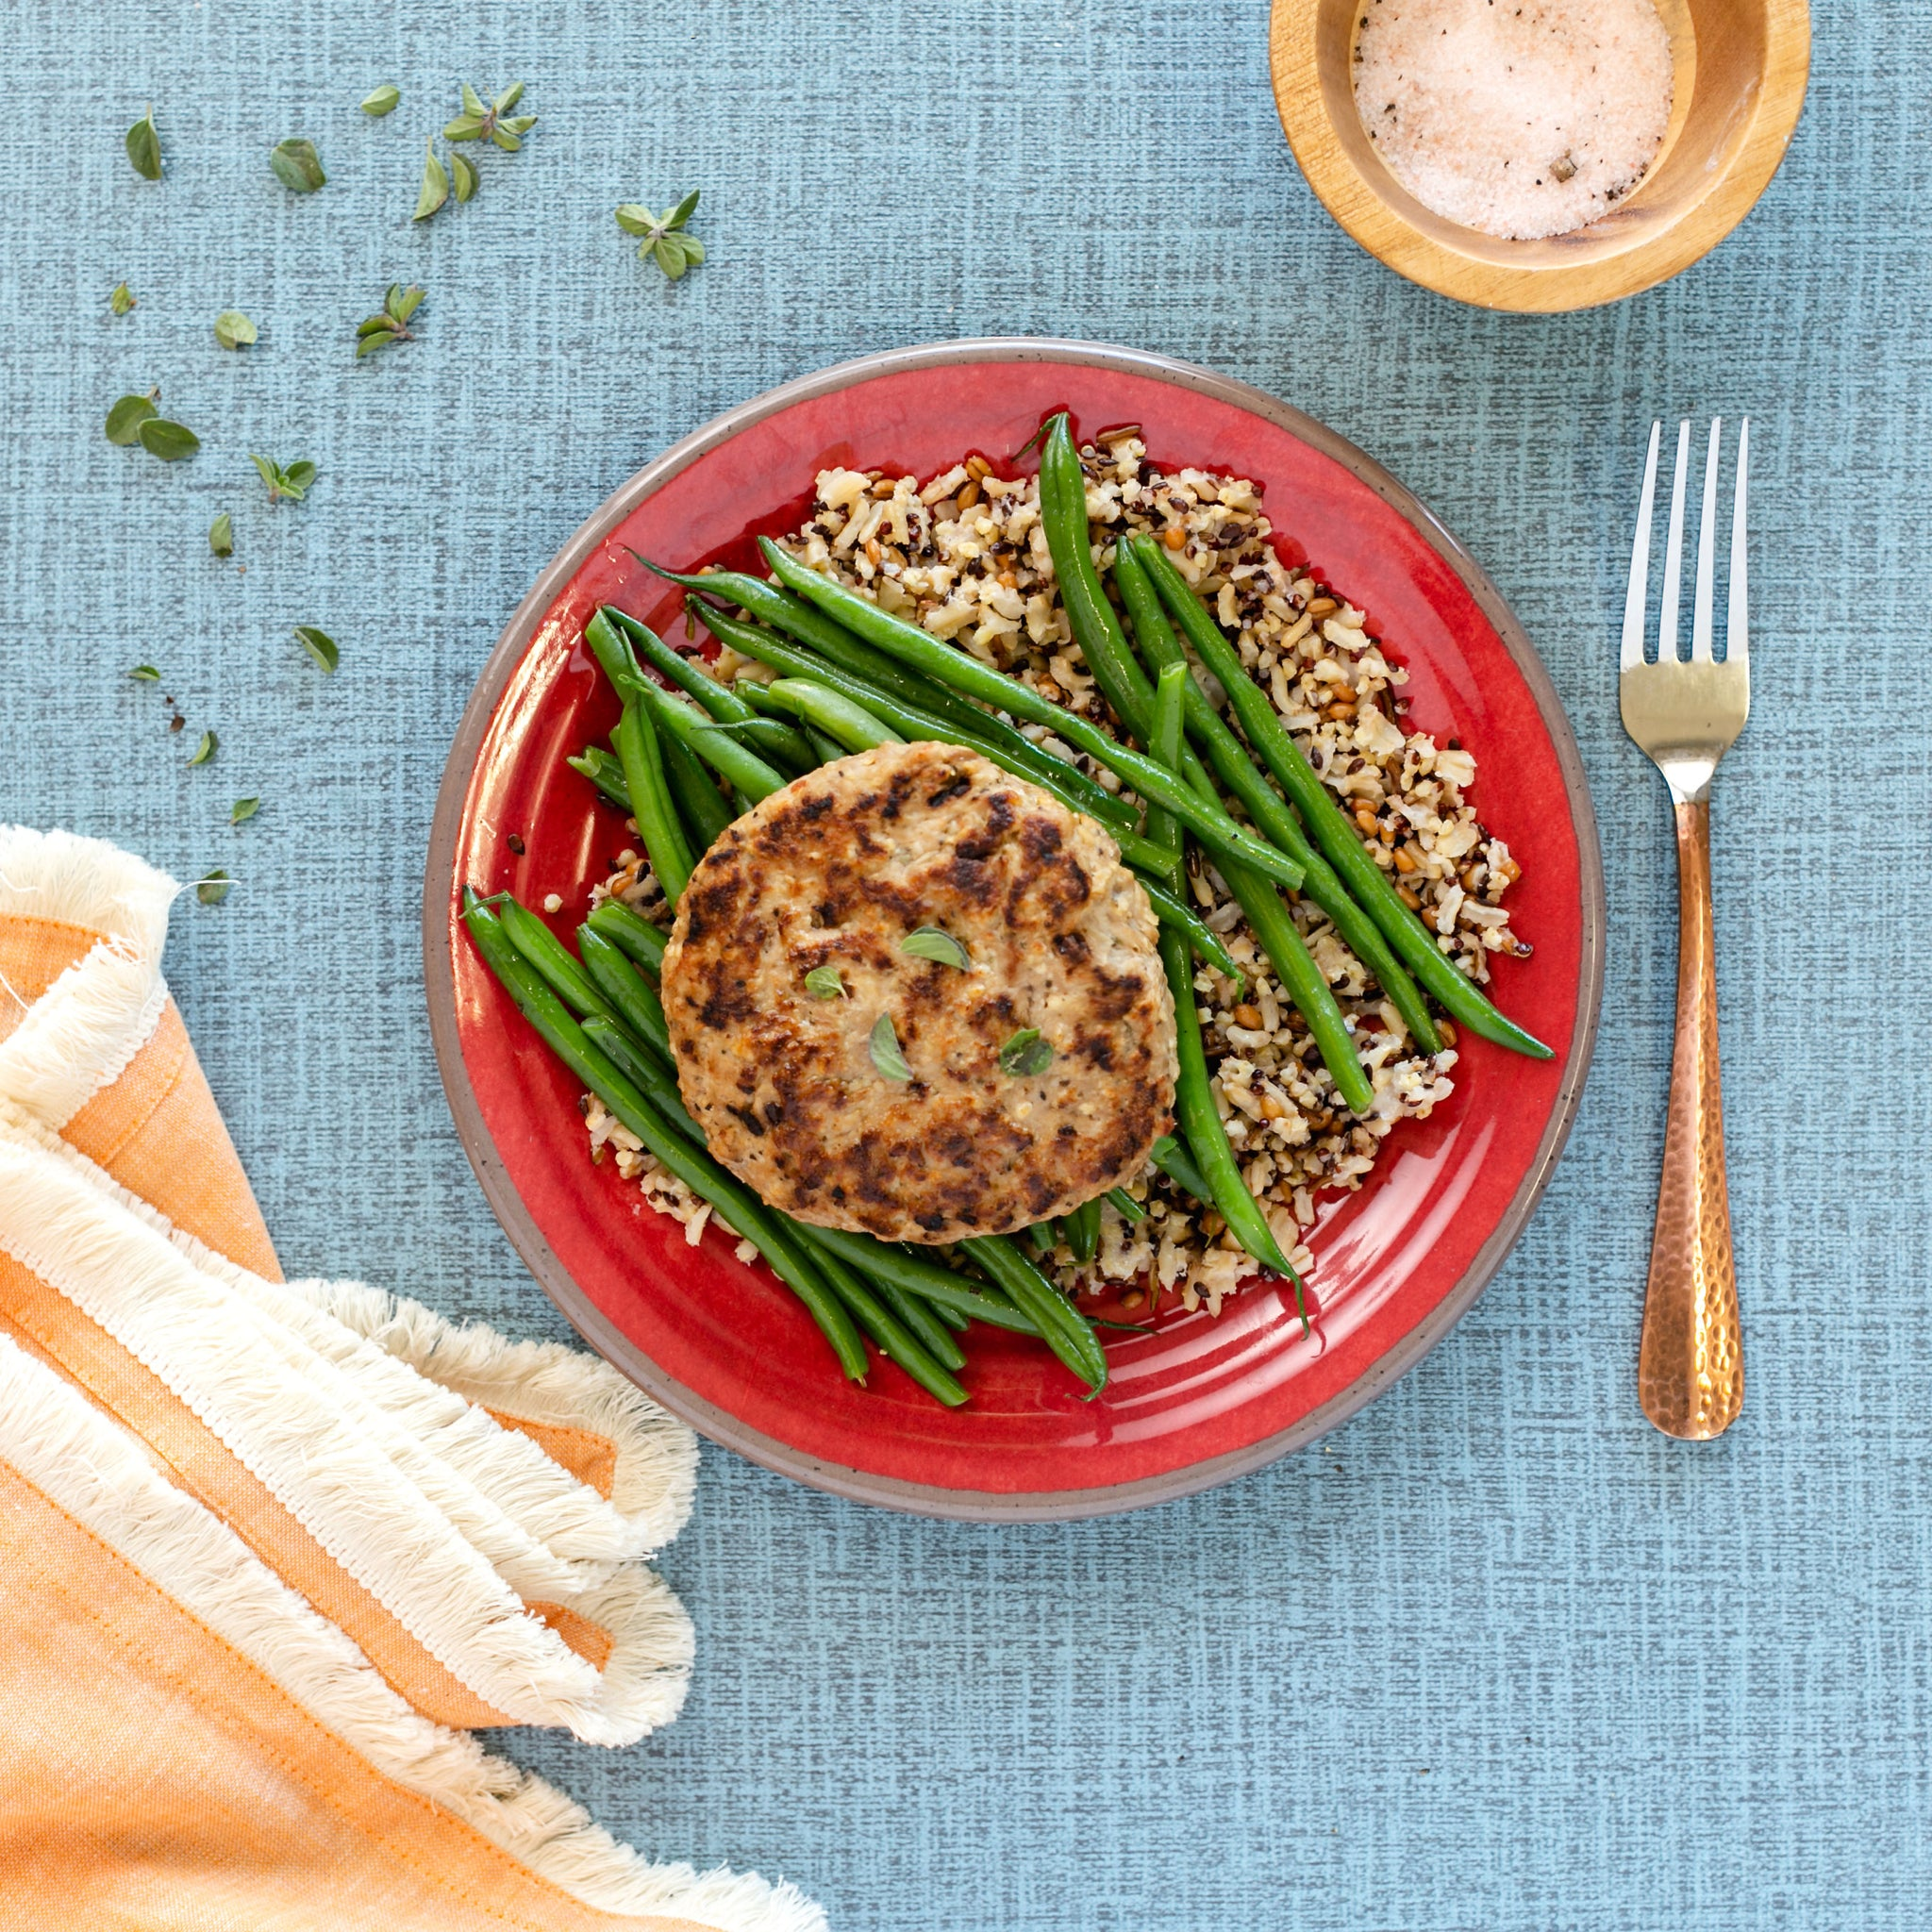 Turkey Burger, Rice, Green Beans